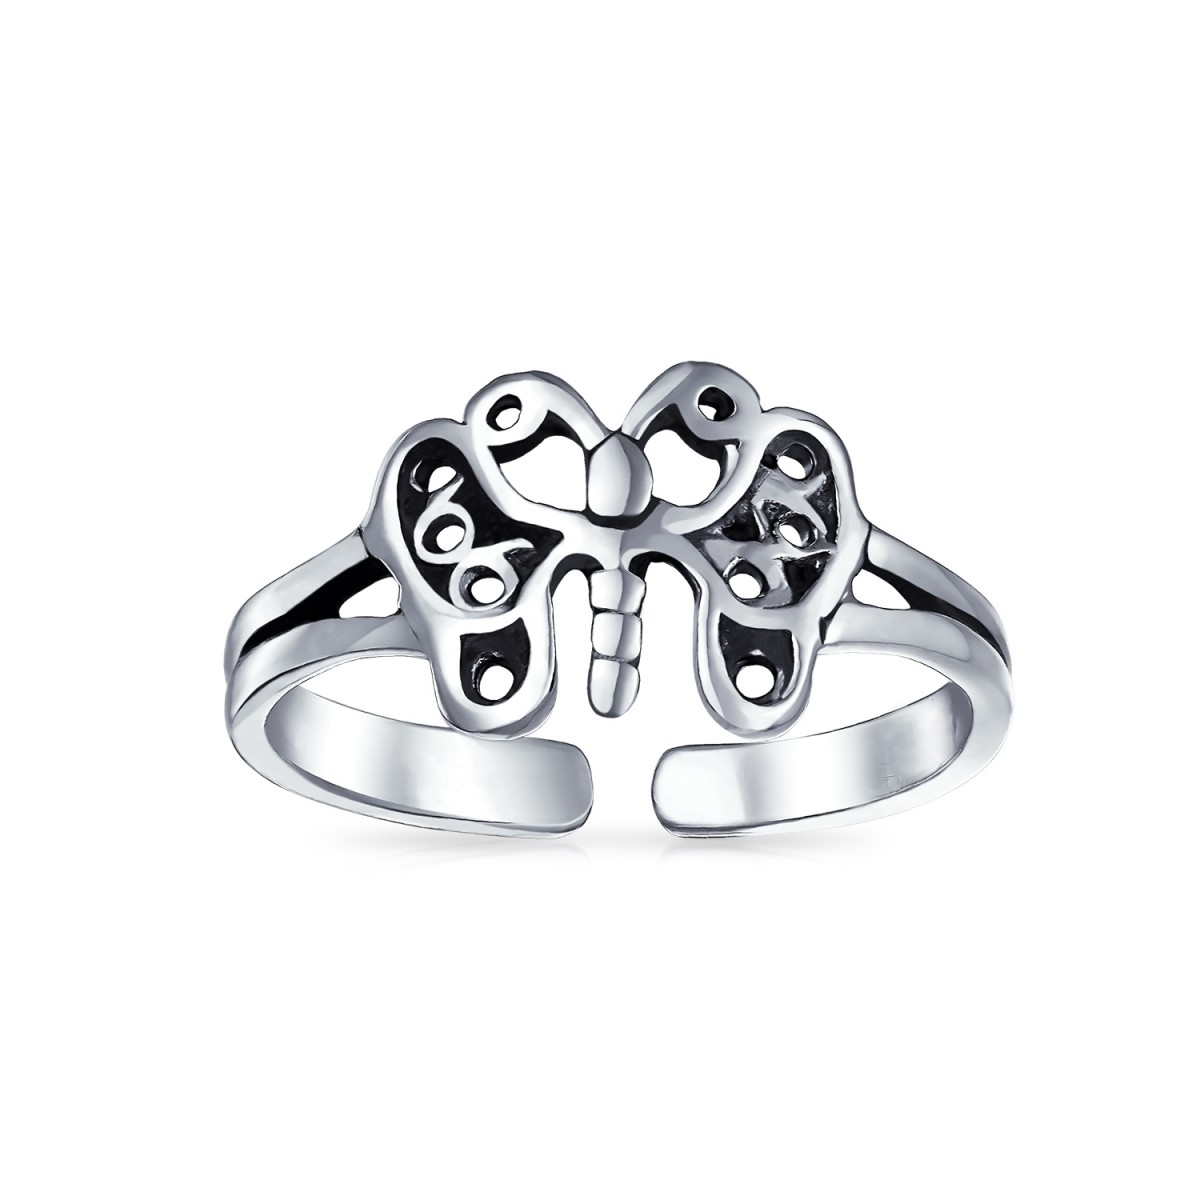 Filigree Butterfly Toe Ring Adjustable Sterling Silver Midi Rings In Most Popular Butterfly Toe Rings (View 12 of 15)